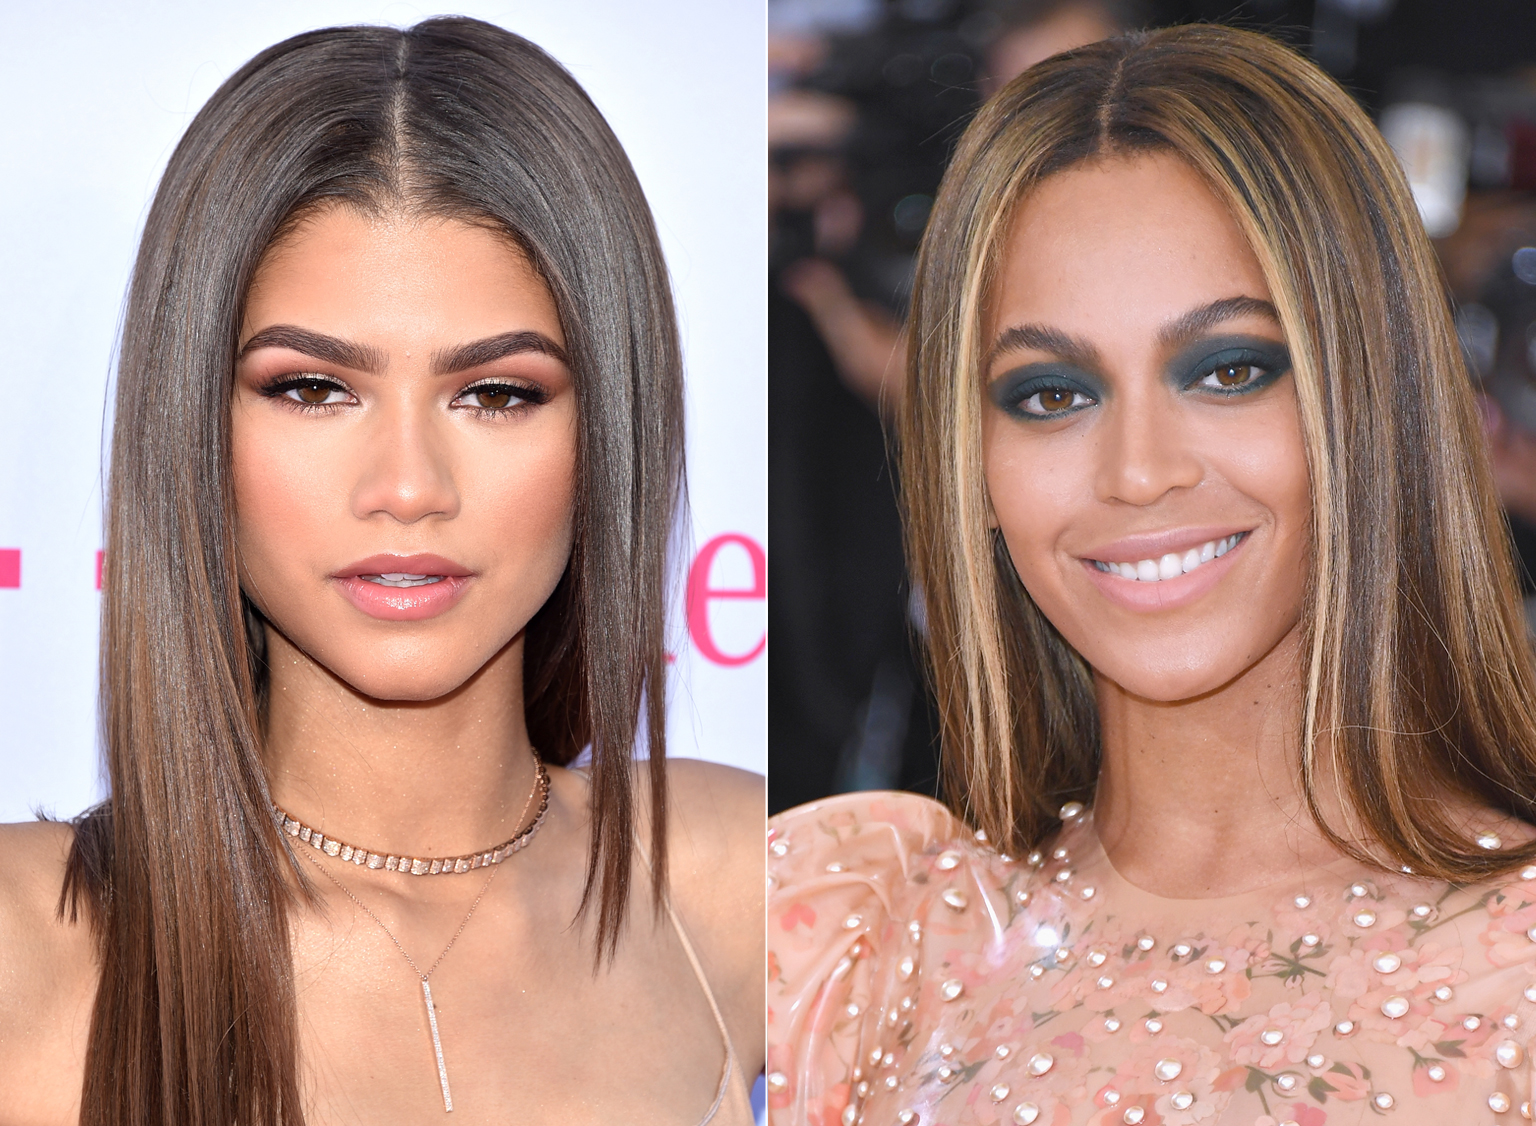 Beyoncé Looks Just Like Zendaya in This Backstage Photo